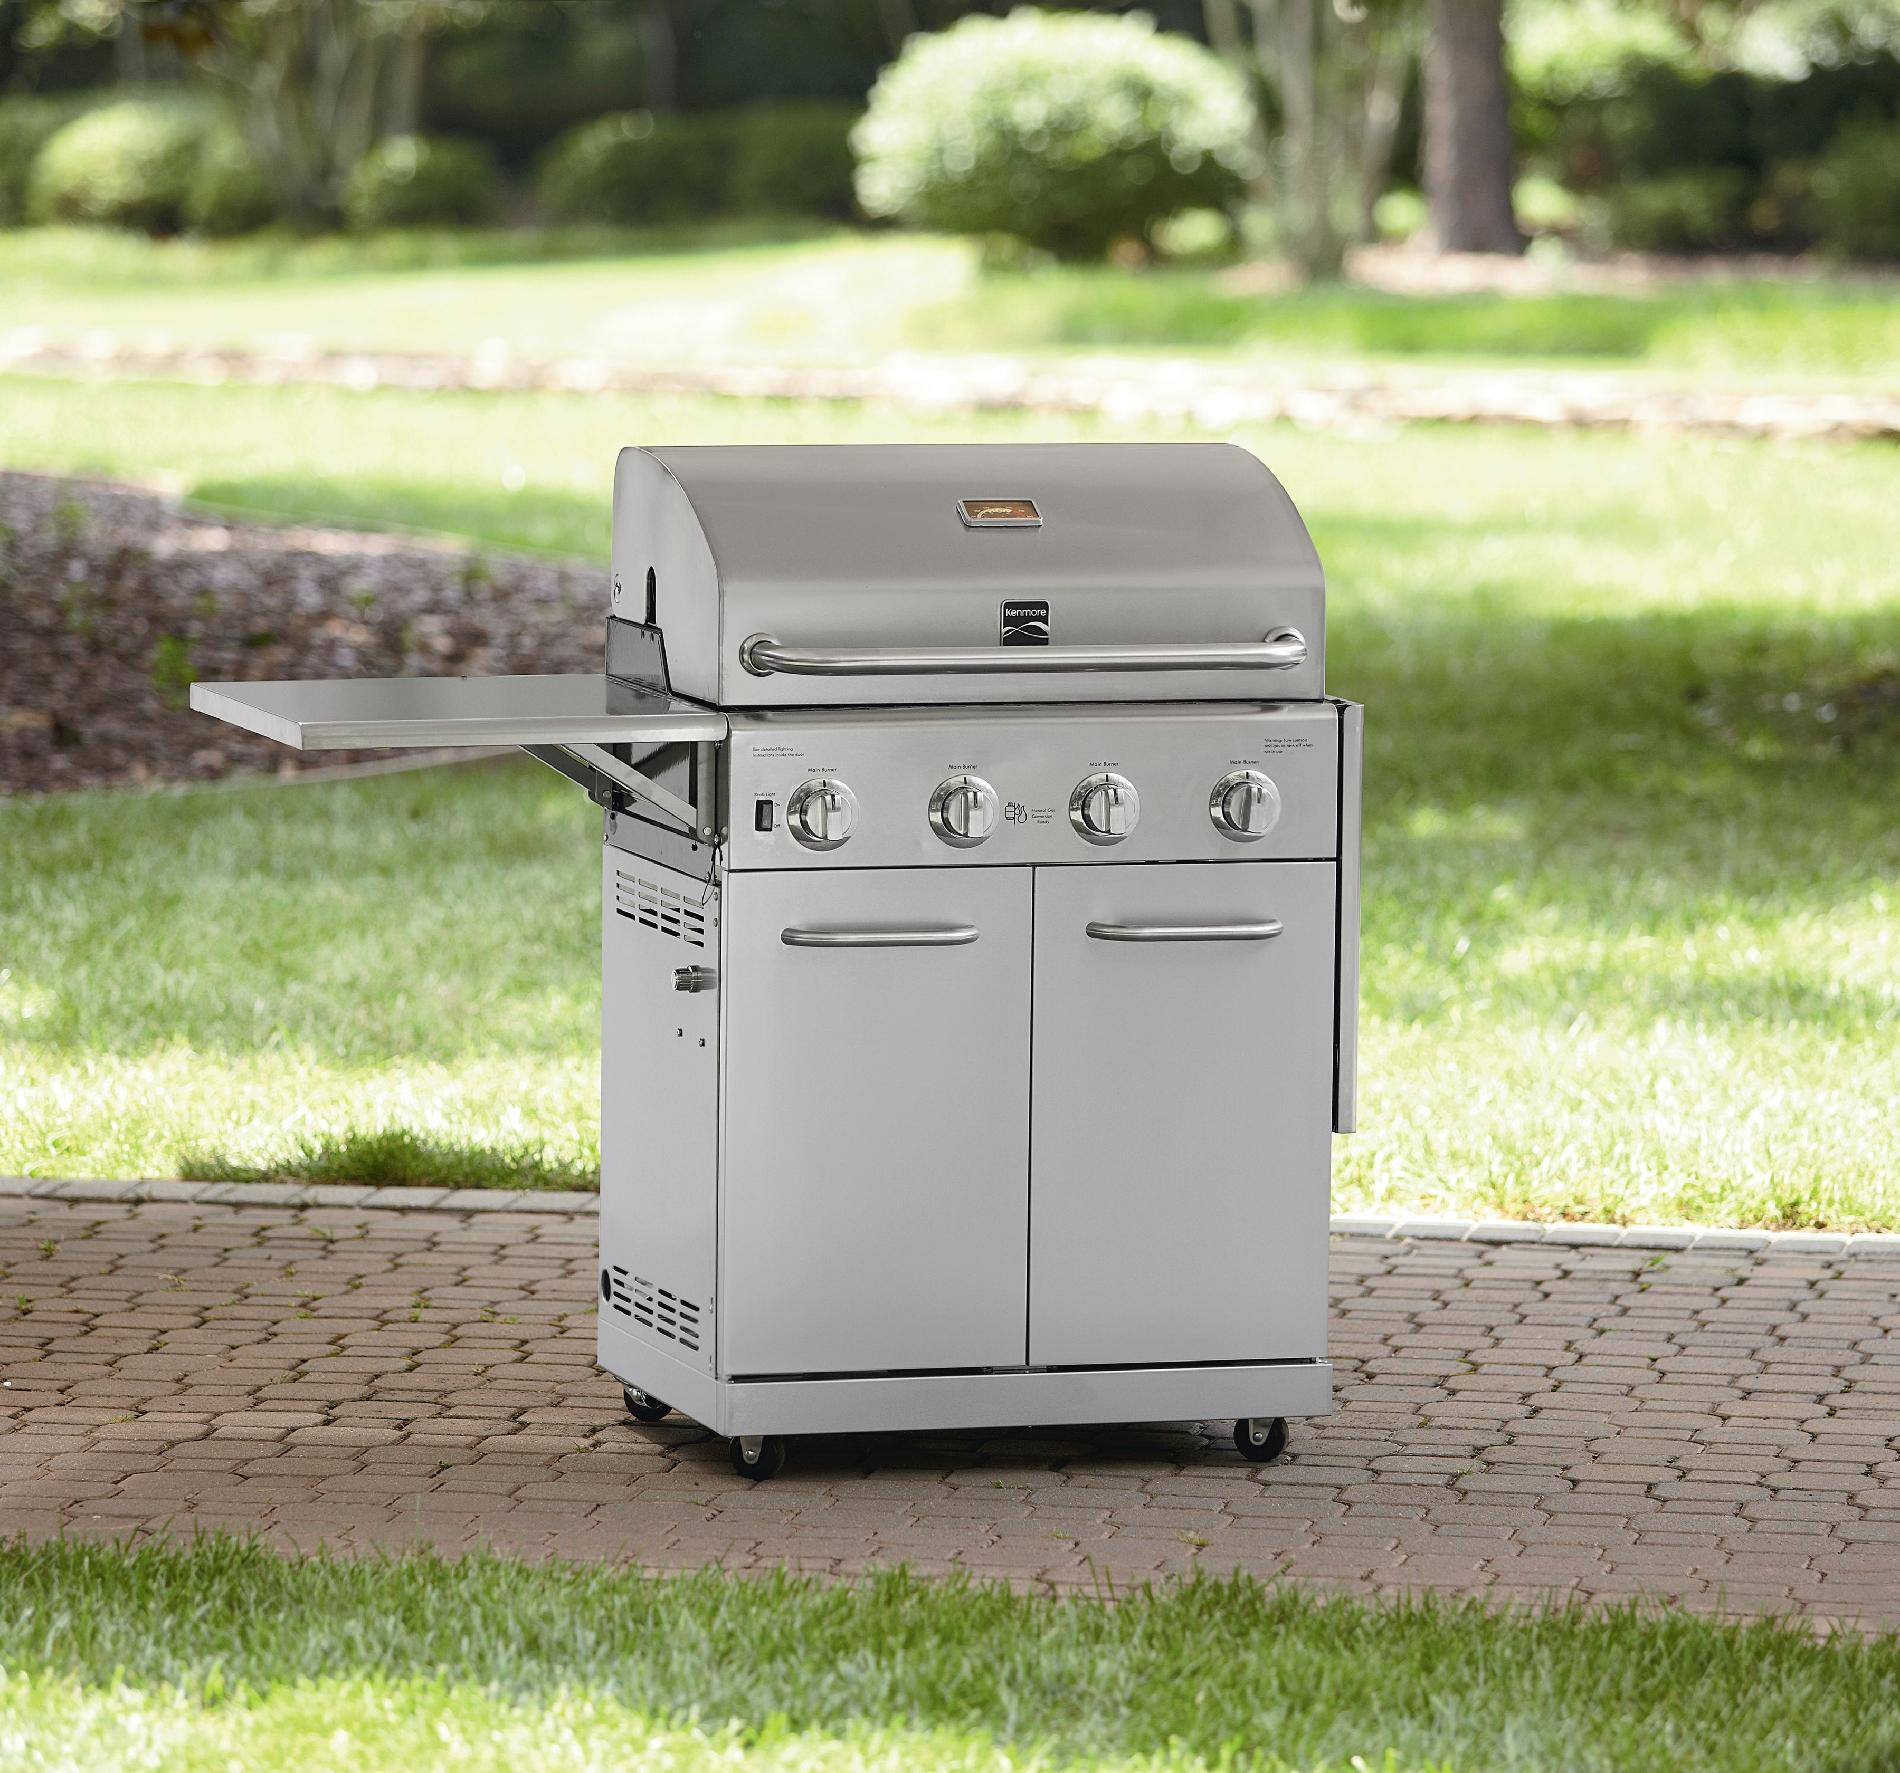 Kenmore Stainless Steel 4 Burner Gas Grill With Folding Side Shelves and lit knobs